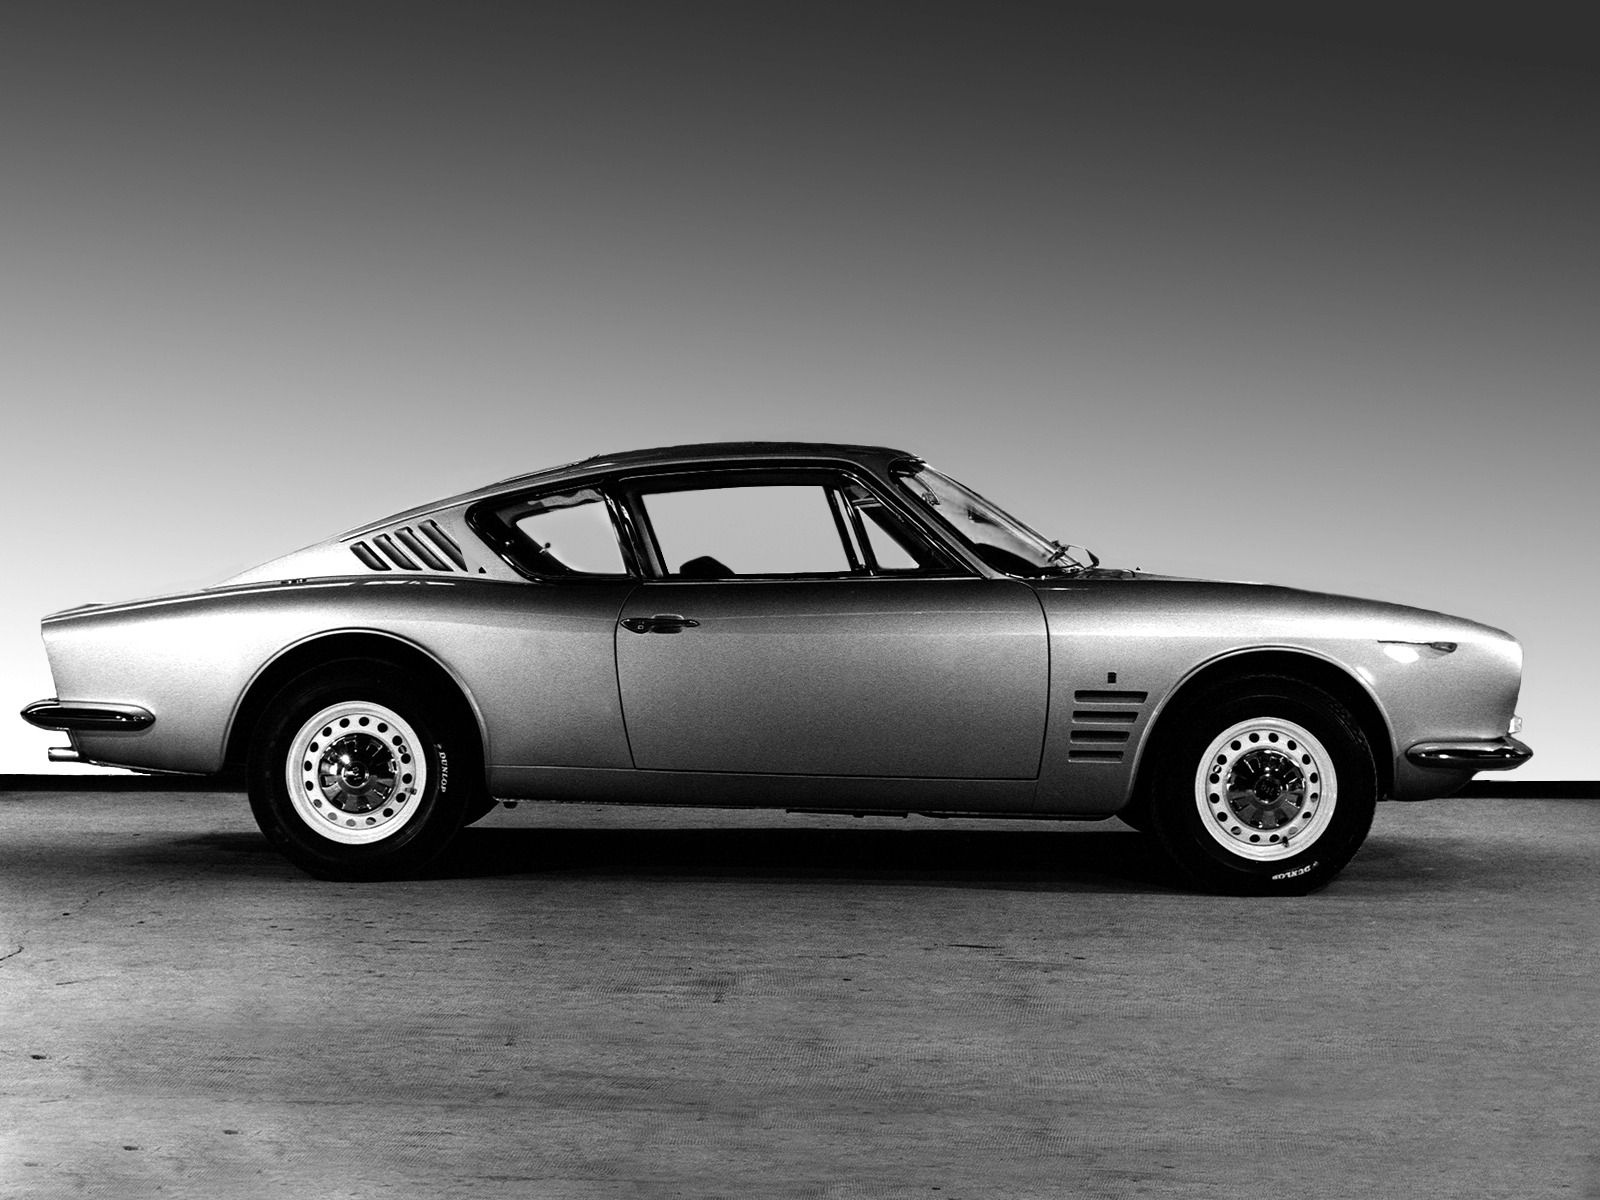 Ford Osi 20m Ts Prototype 1966 In 2020 Retro Cars Ford Car